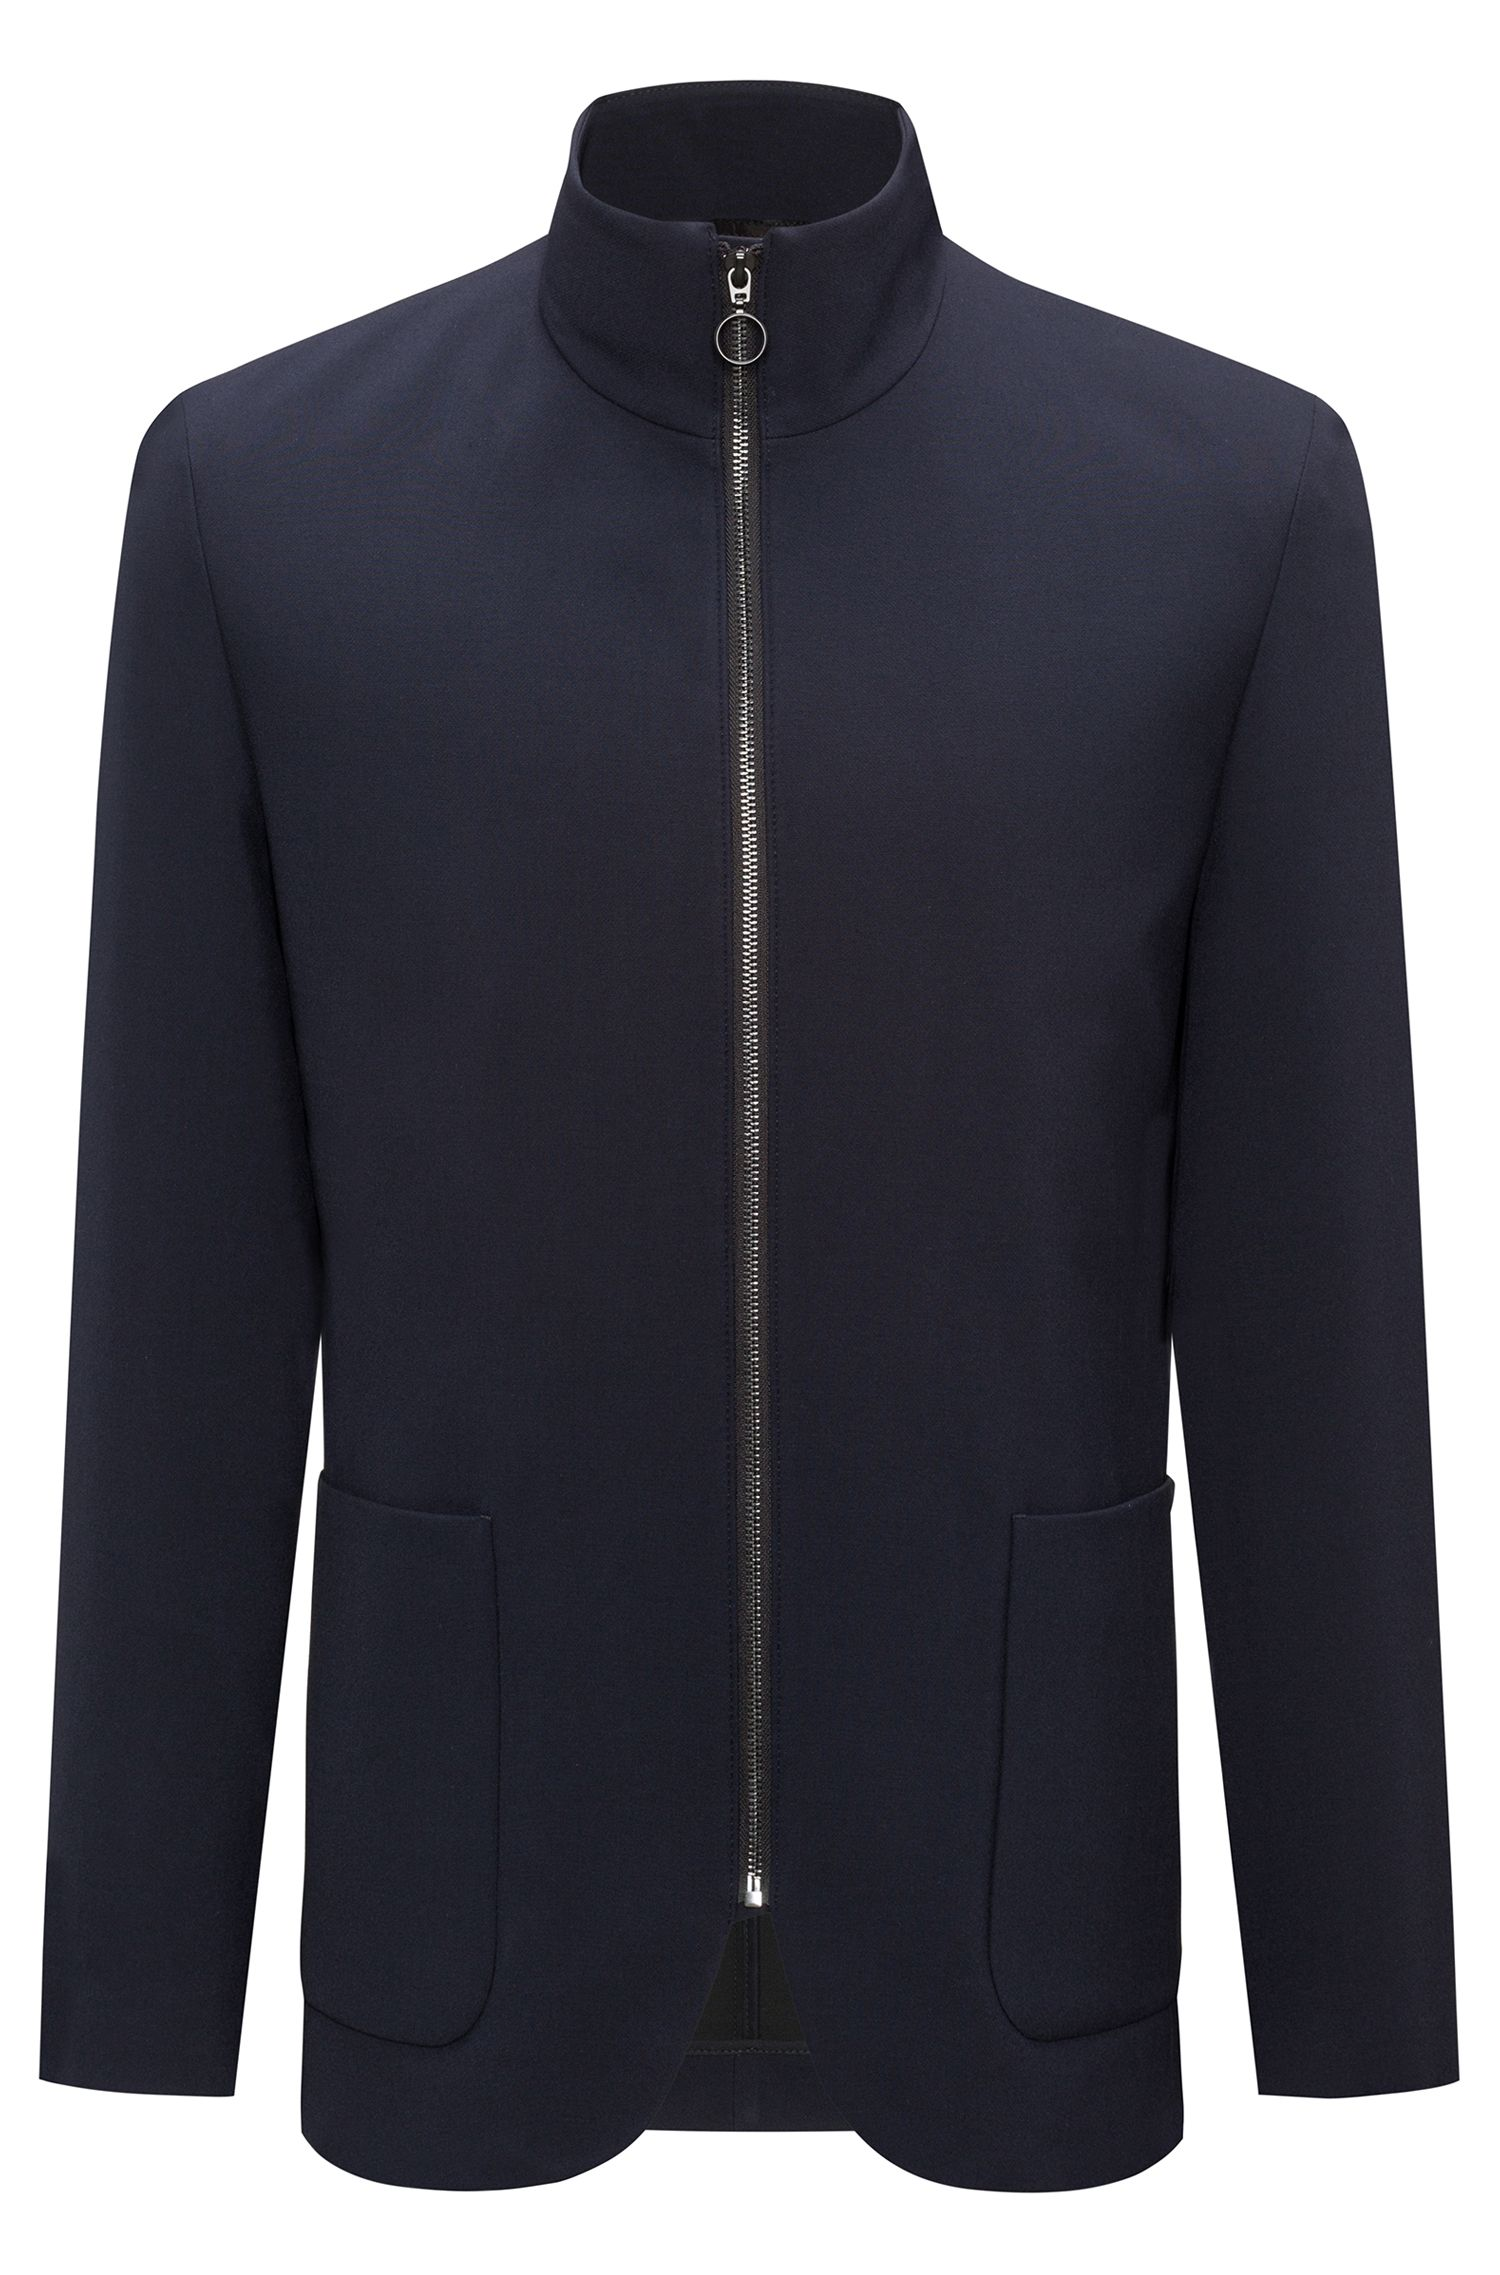 Zip-through jacket in technical stretch